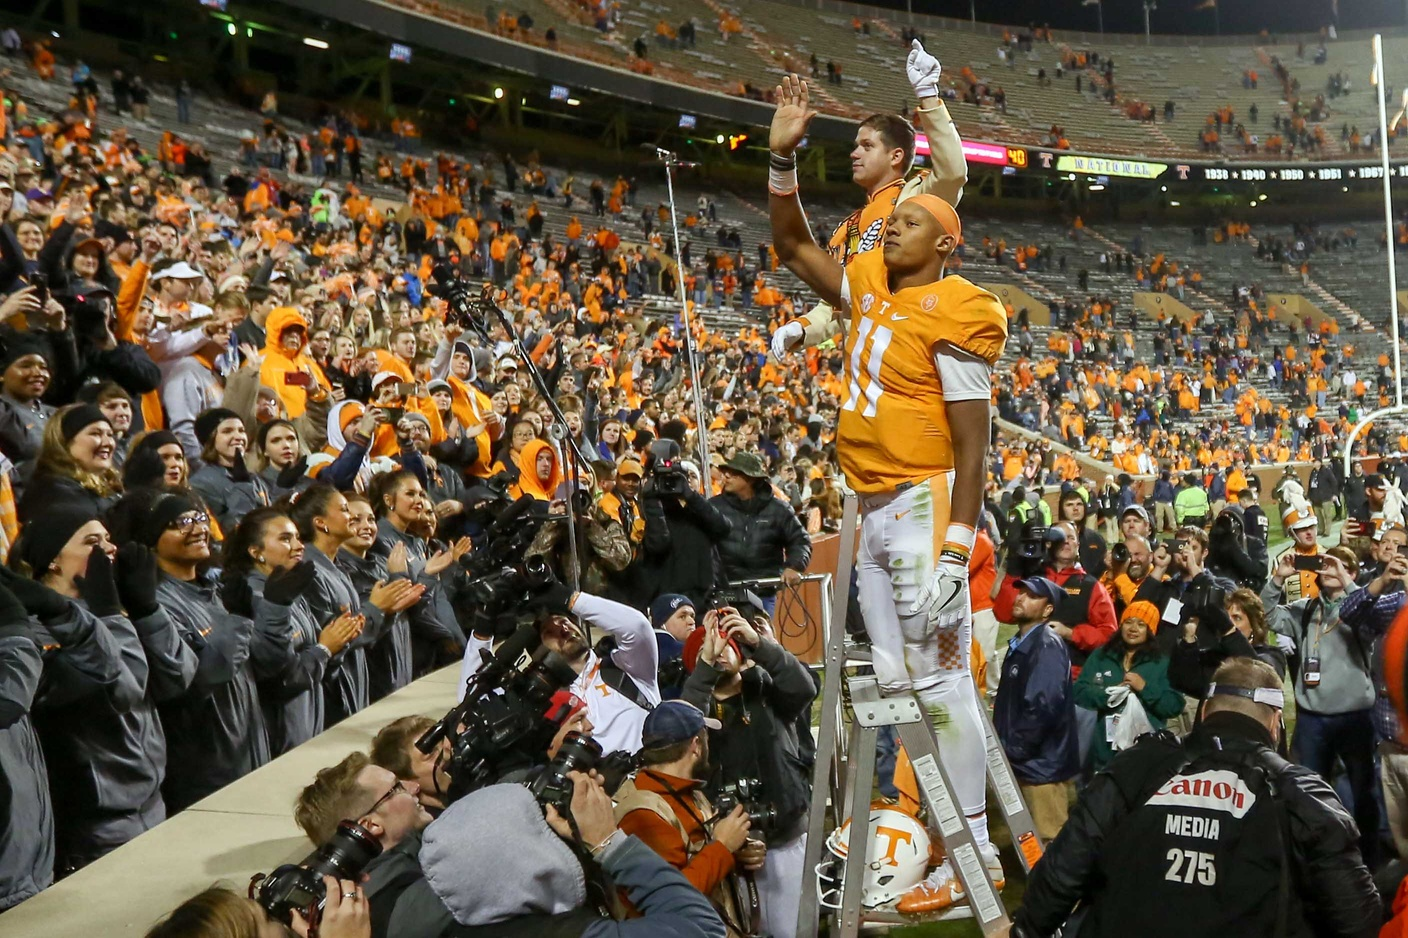 Nov 19, 2016; Knoxville, TN, USA; Tennessee Volunteers quarterback Joshua Dobbs (11) directs the band after the game against the Missouri Tigers at Neyland Stadium. Tennessee won 63 to 37. Mandatory Credit: Randy Sartin-USA TODAY Sports